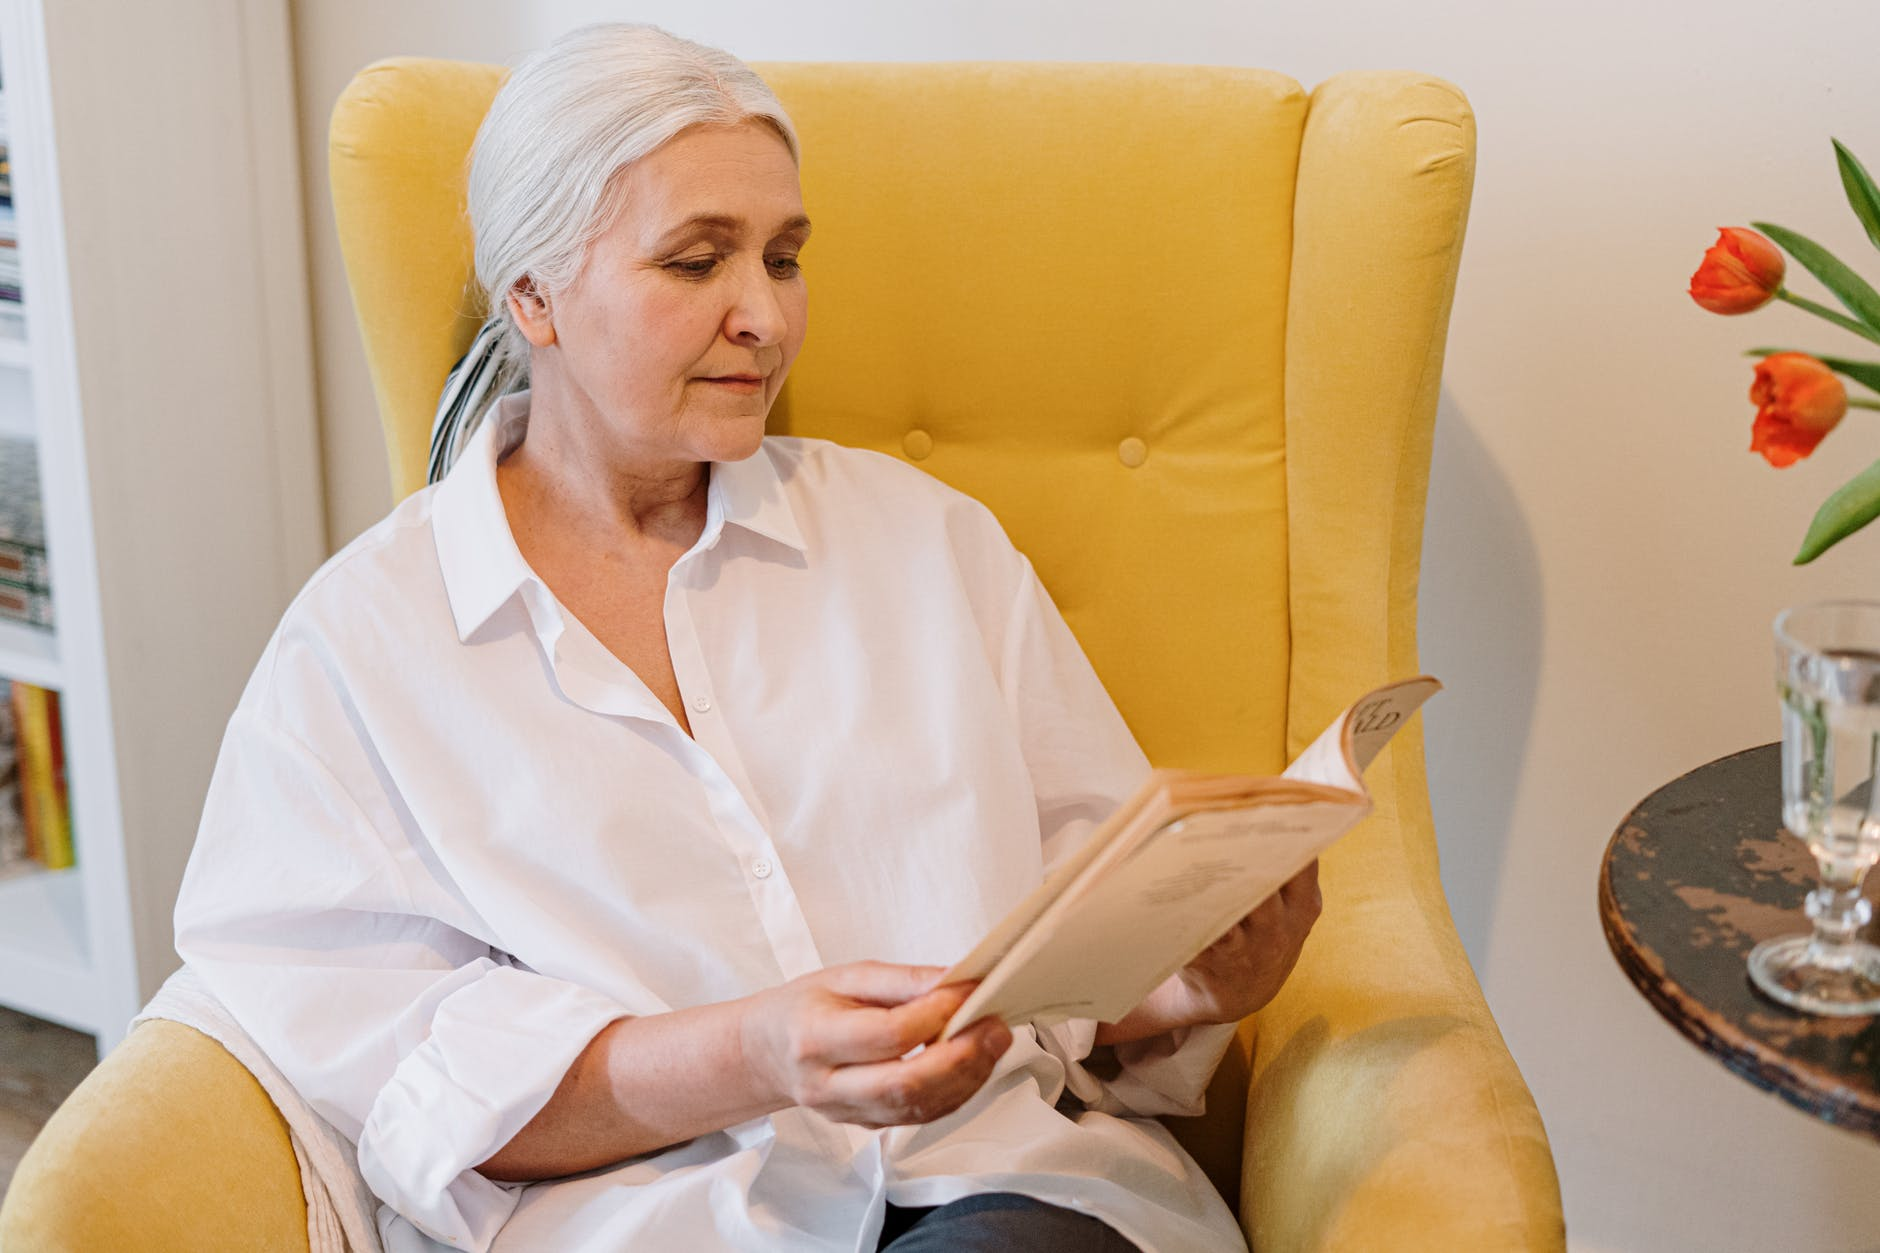 An elderly woman sitting on a couch reading a book. | Photo: Pexels